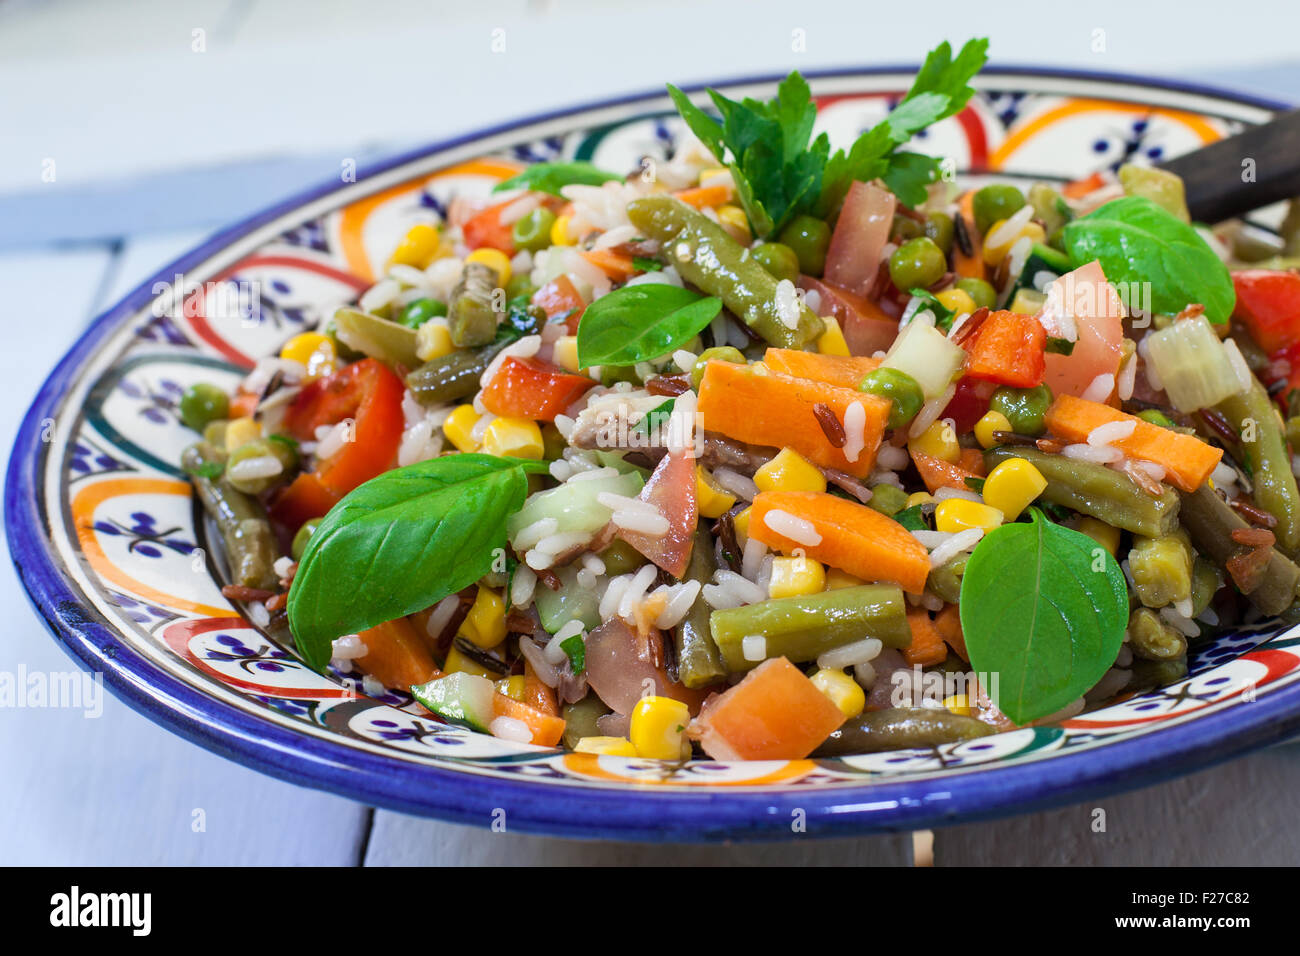 fresh rice salad with vegetables on decorated bowl - Stock Image